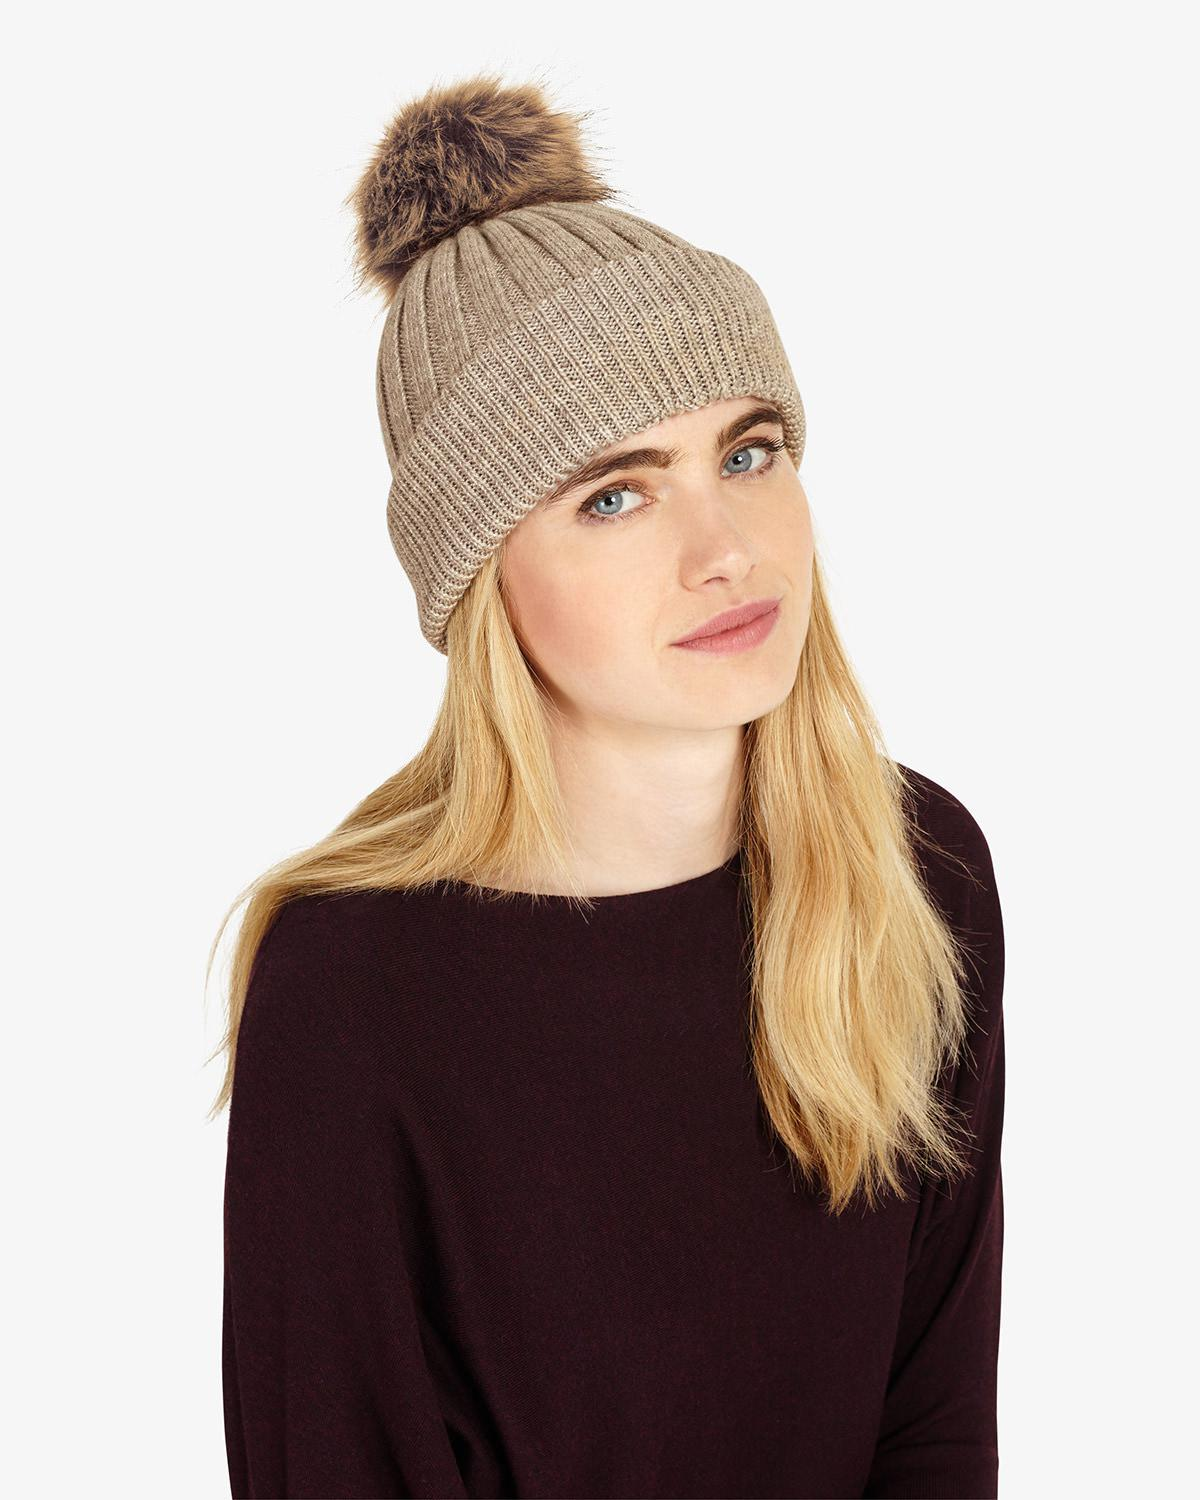 b388ce7b312 Phase Eight Pom Pom Hat in Natural - Lyst